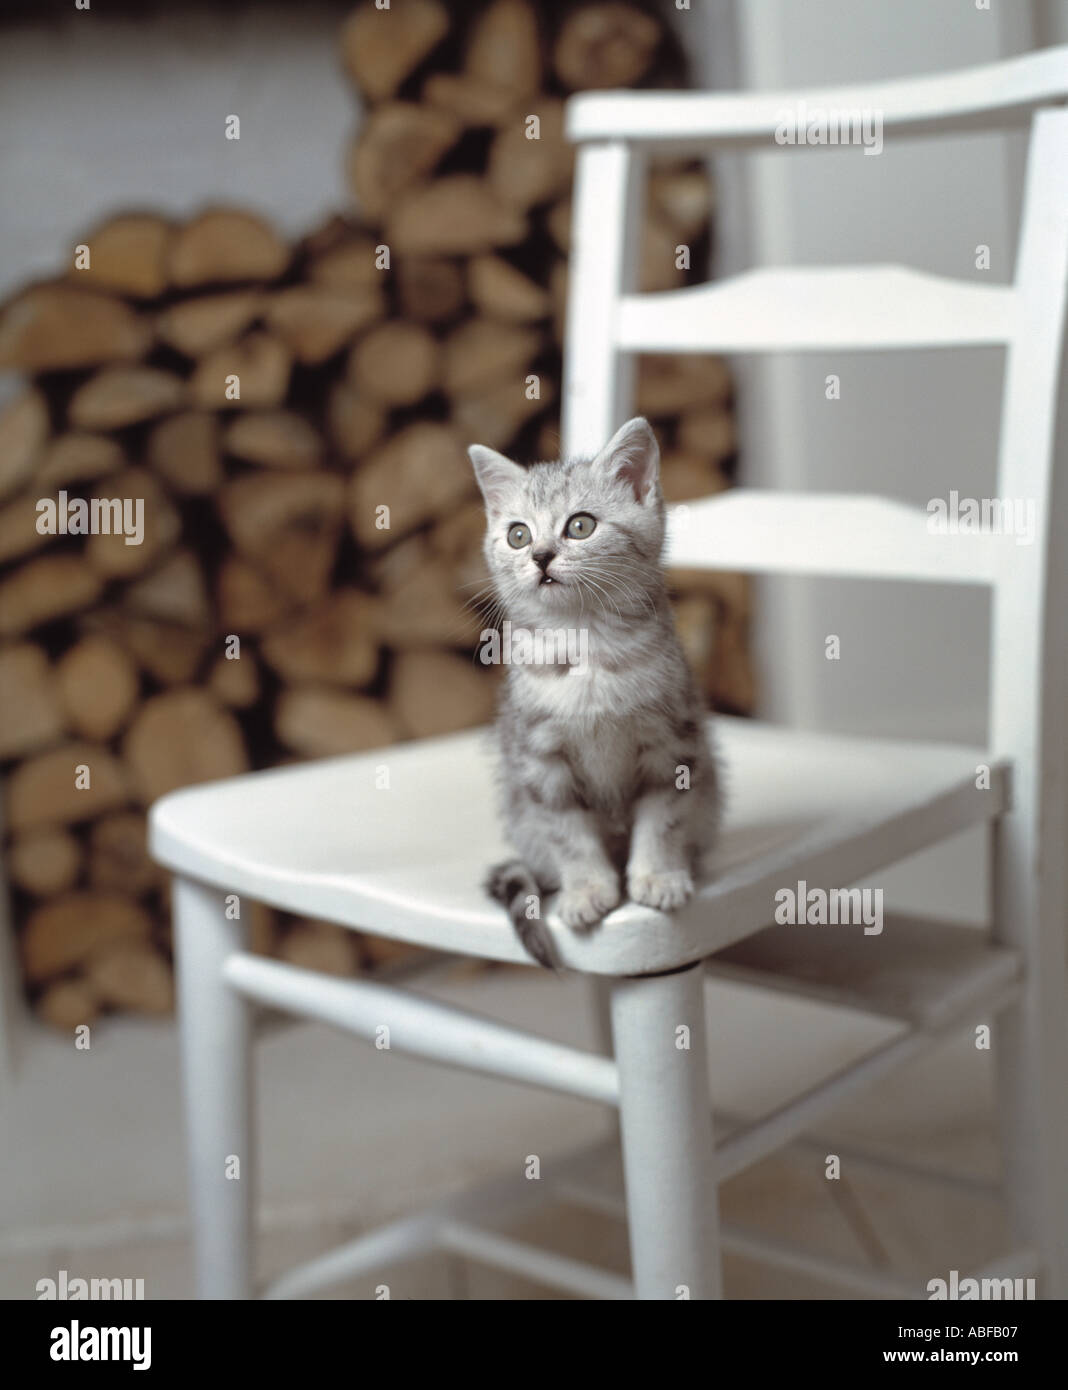 Cat on chair - Stock Image